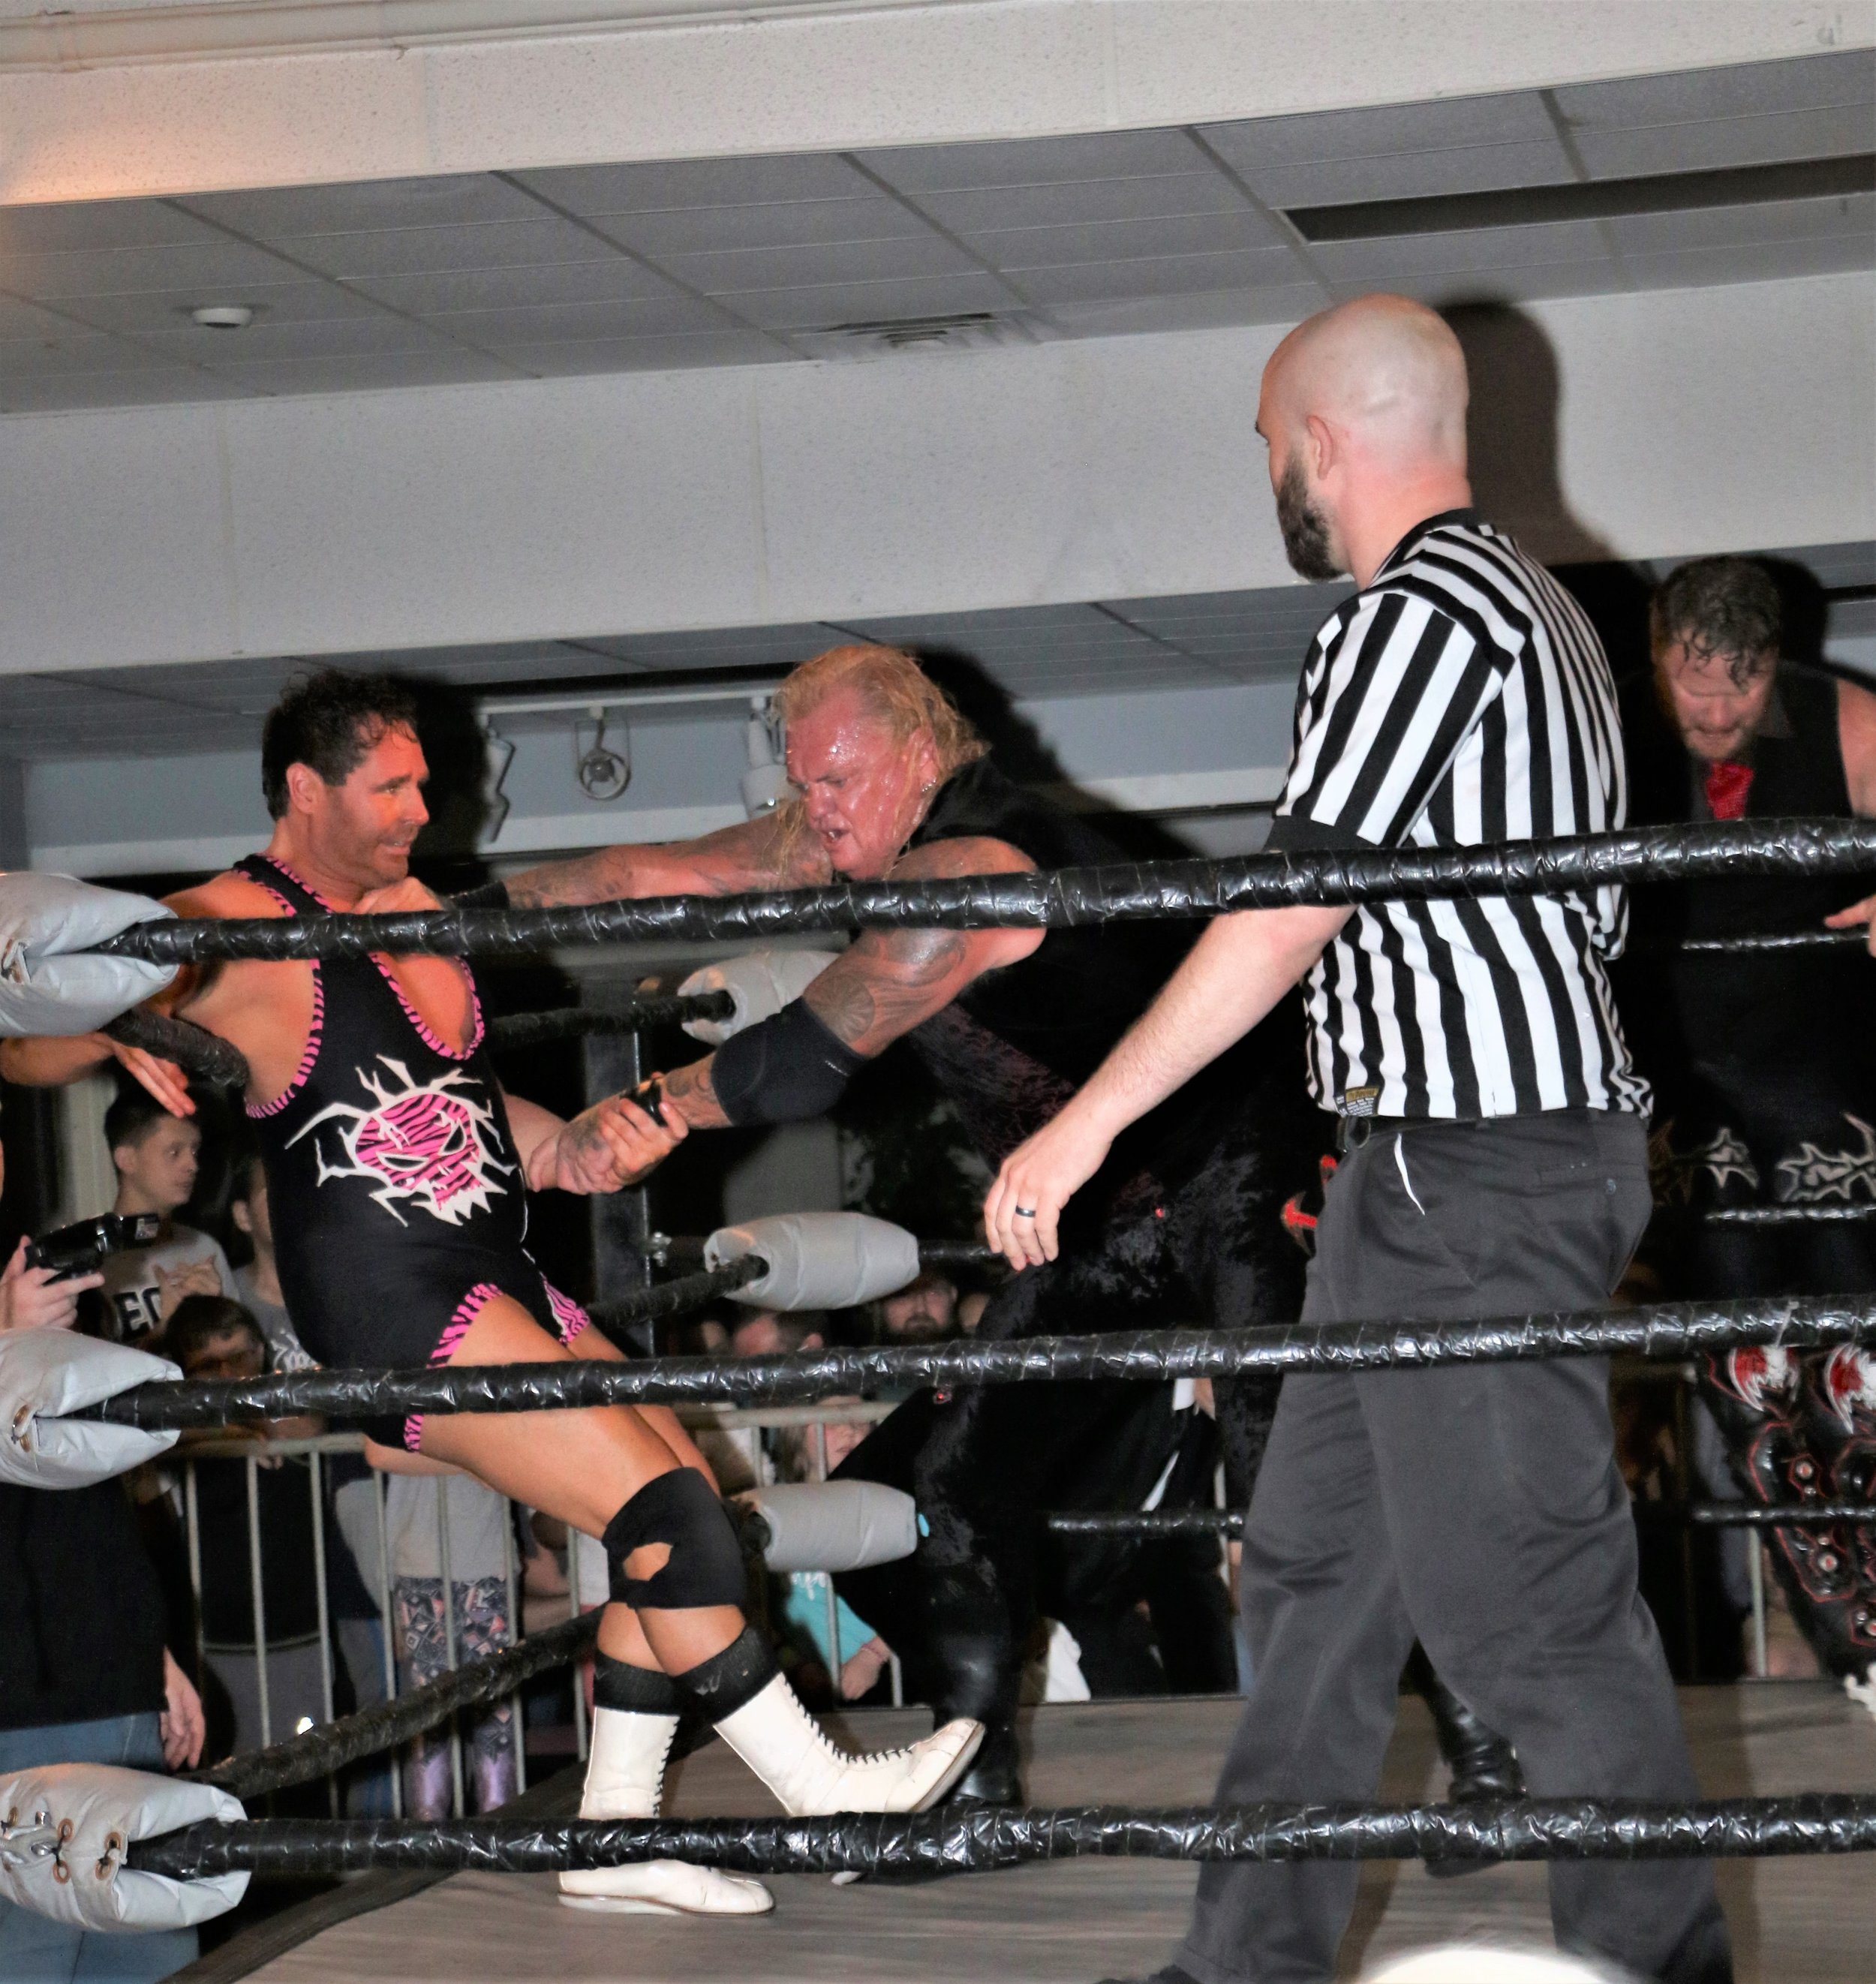 Gangrel gets ready to Irish whip Dr. Jeff Luxon.